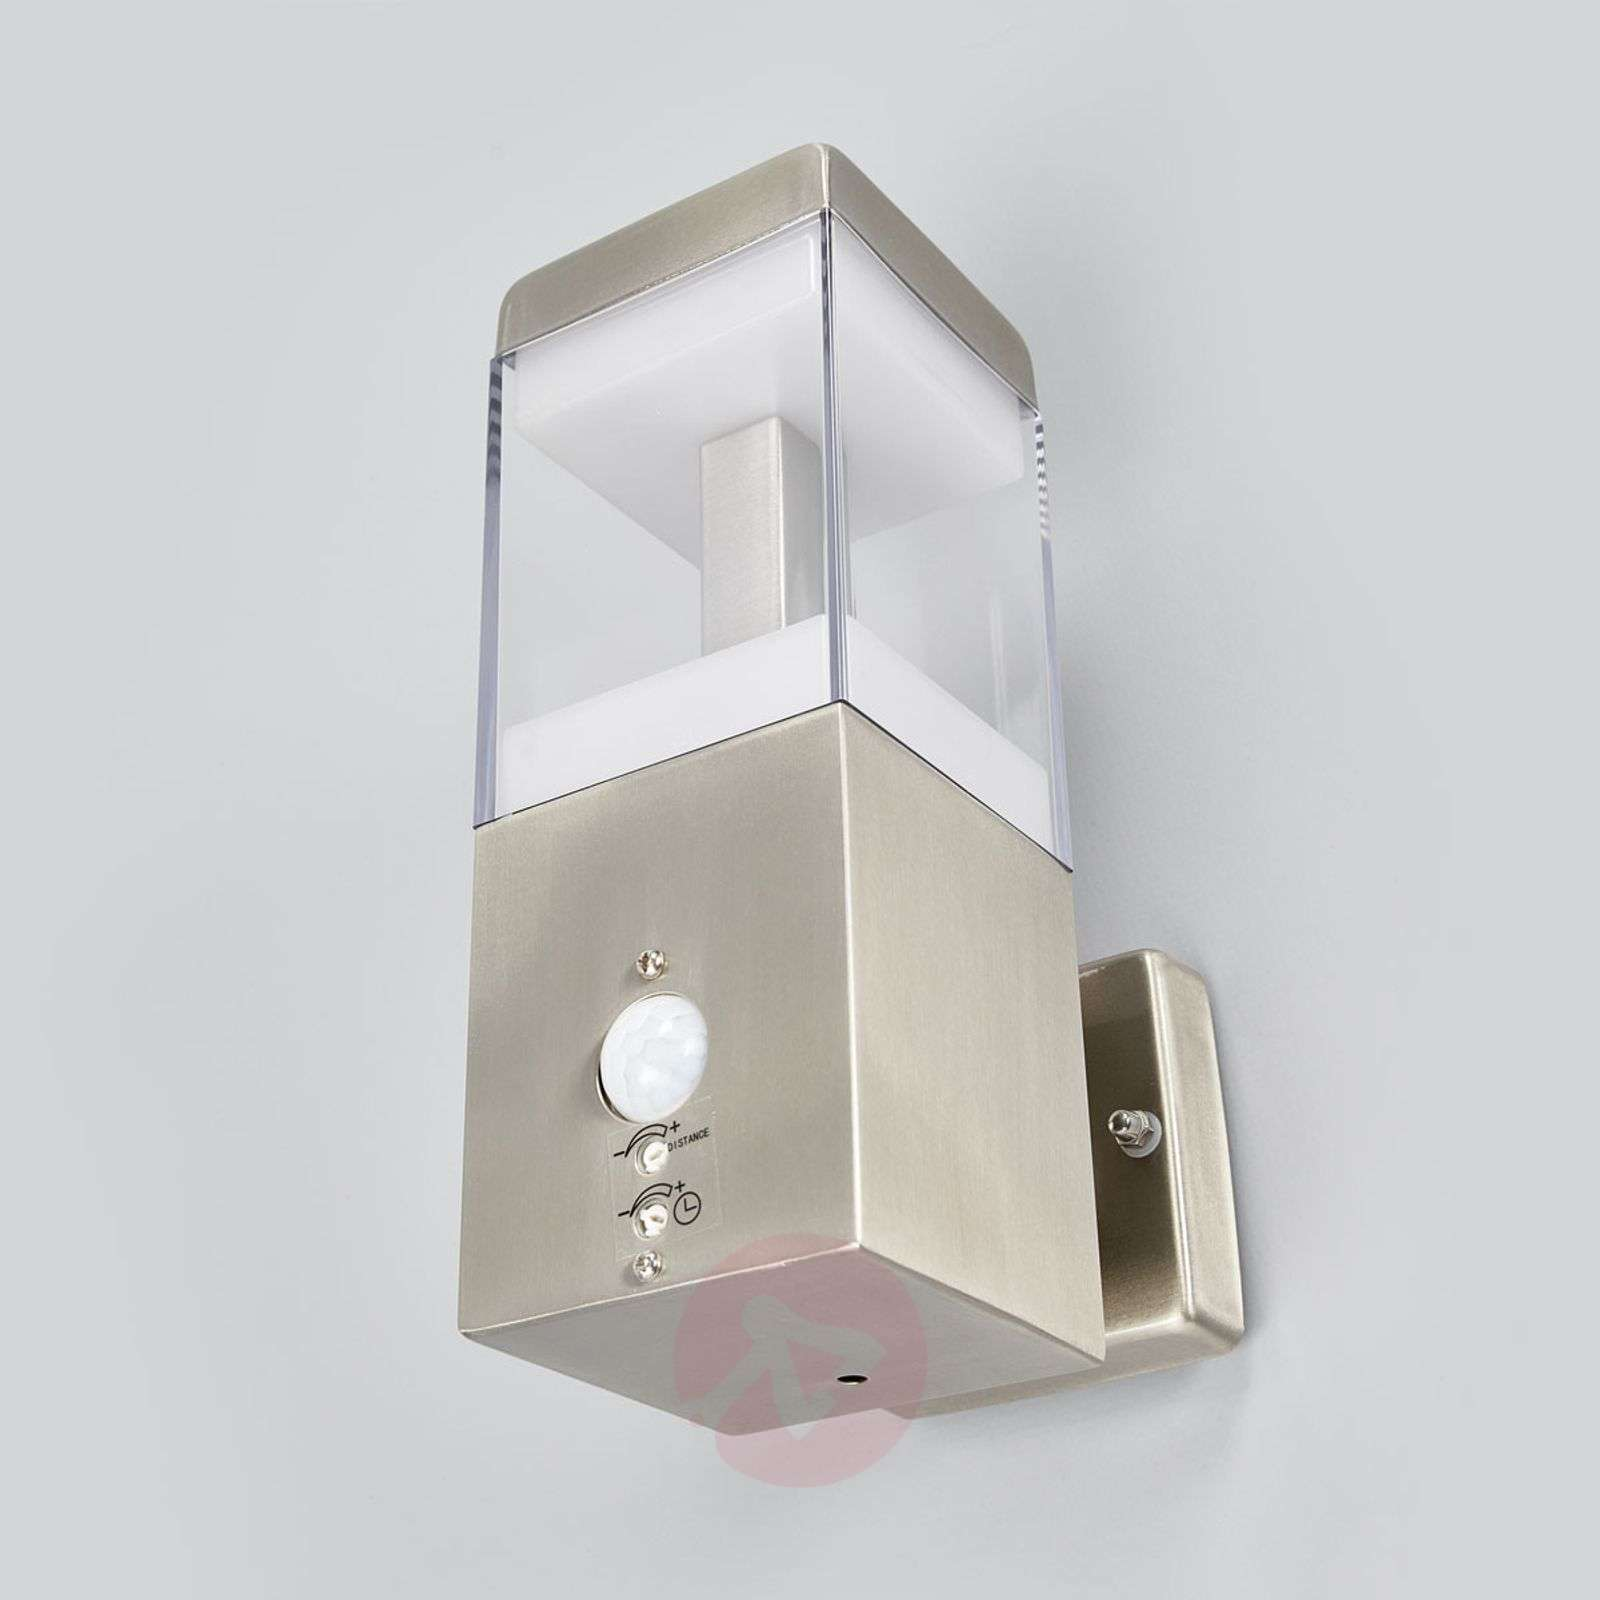 Baily motion sensor LED outdoor wall lamp-9988144-01